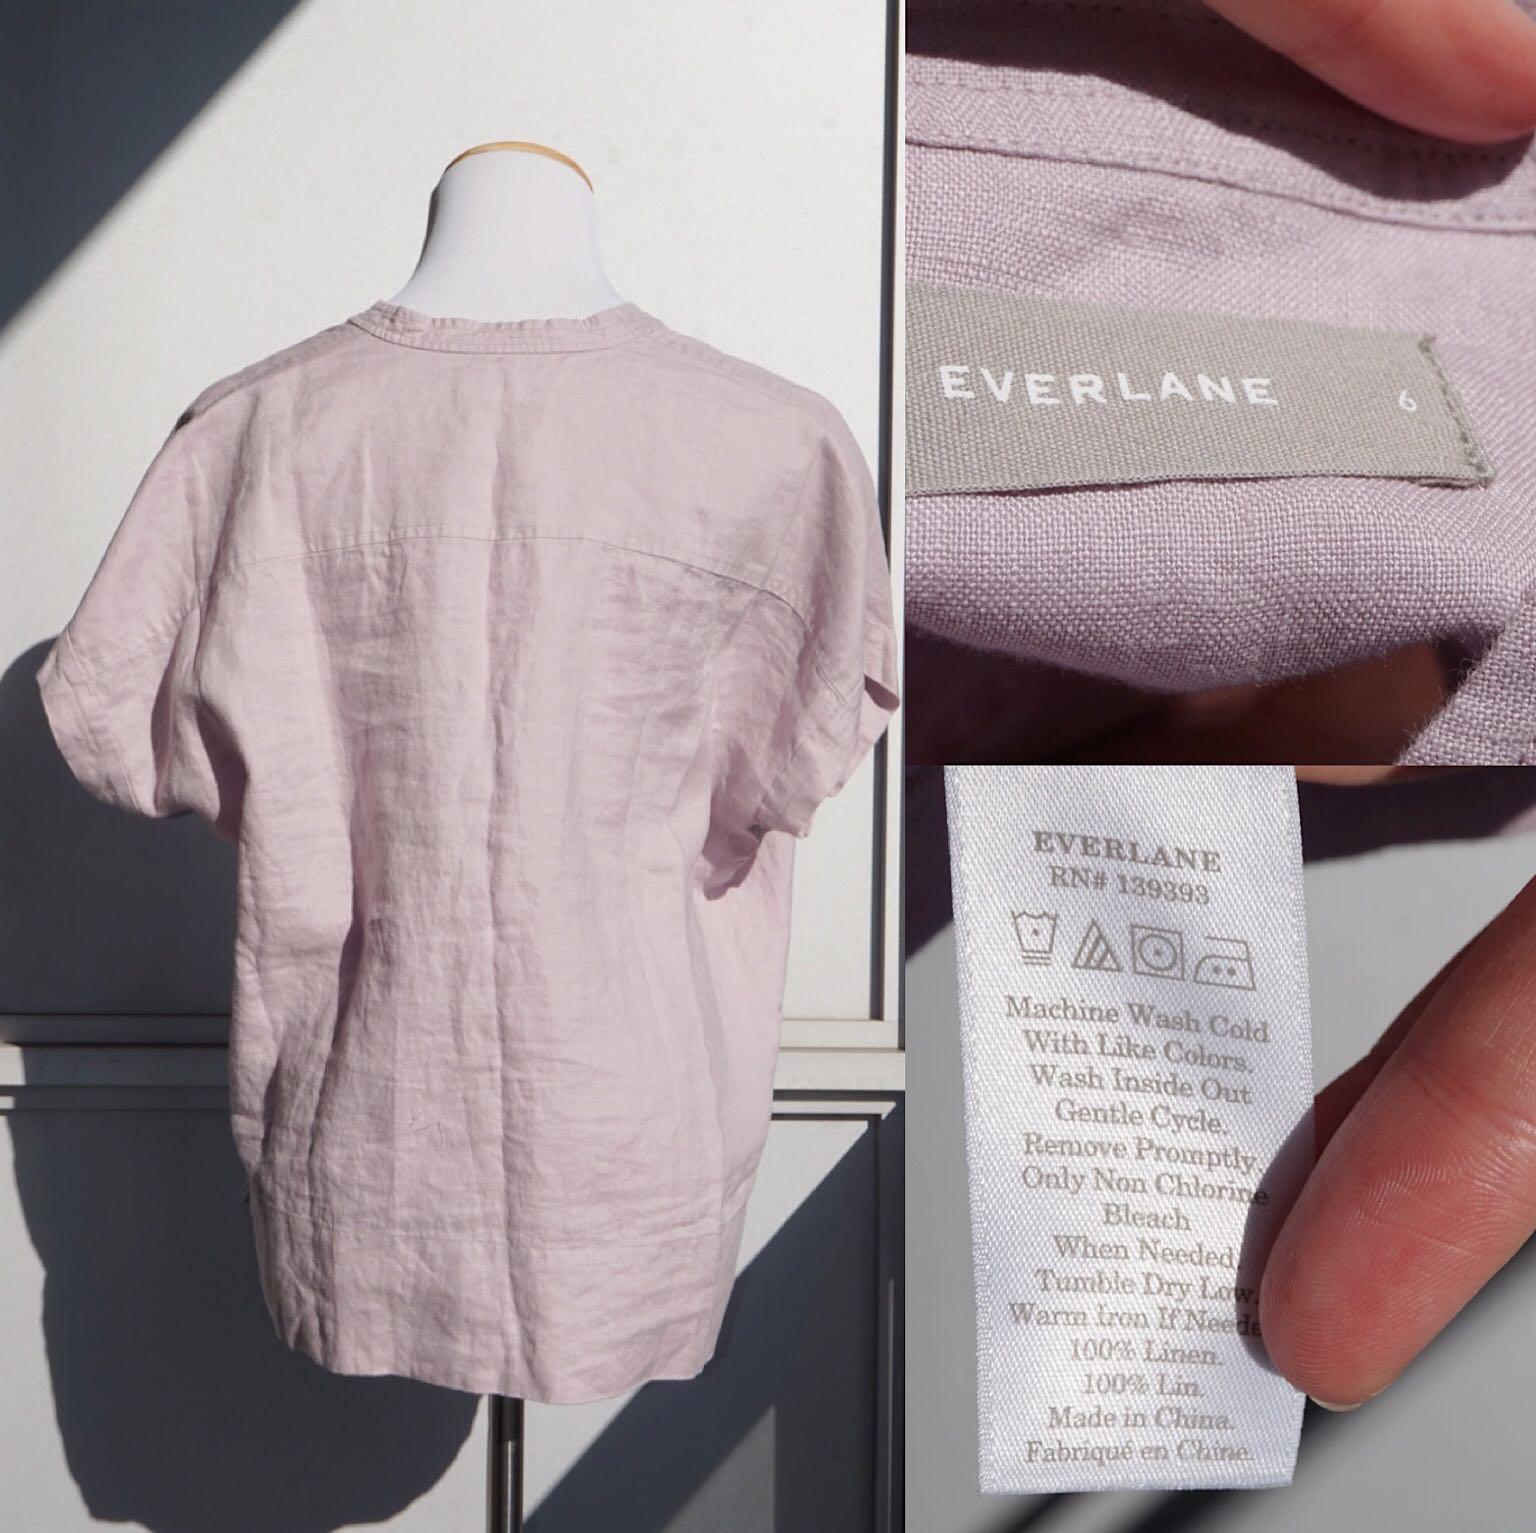 *NWOT* Everlane Linen Split Neck Top In Lavender Size 6